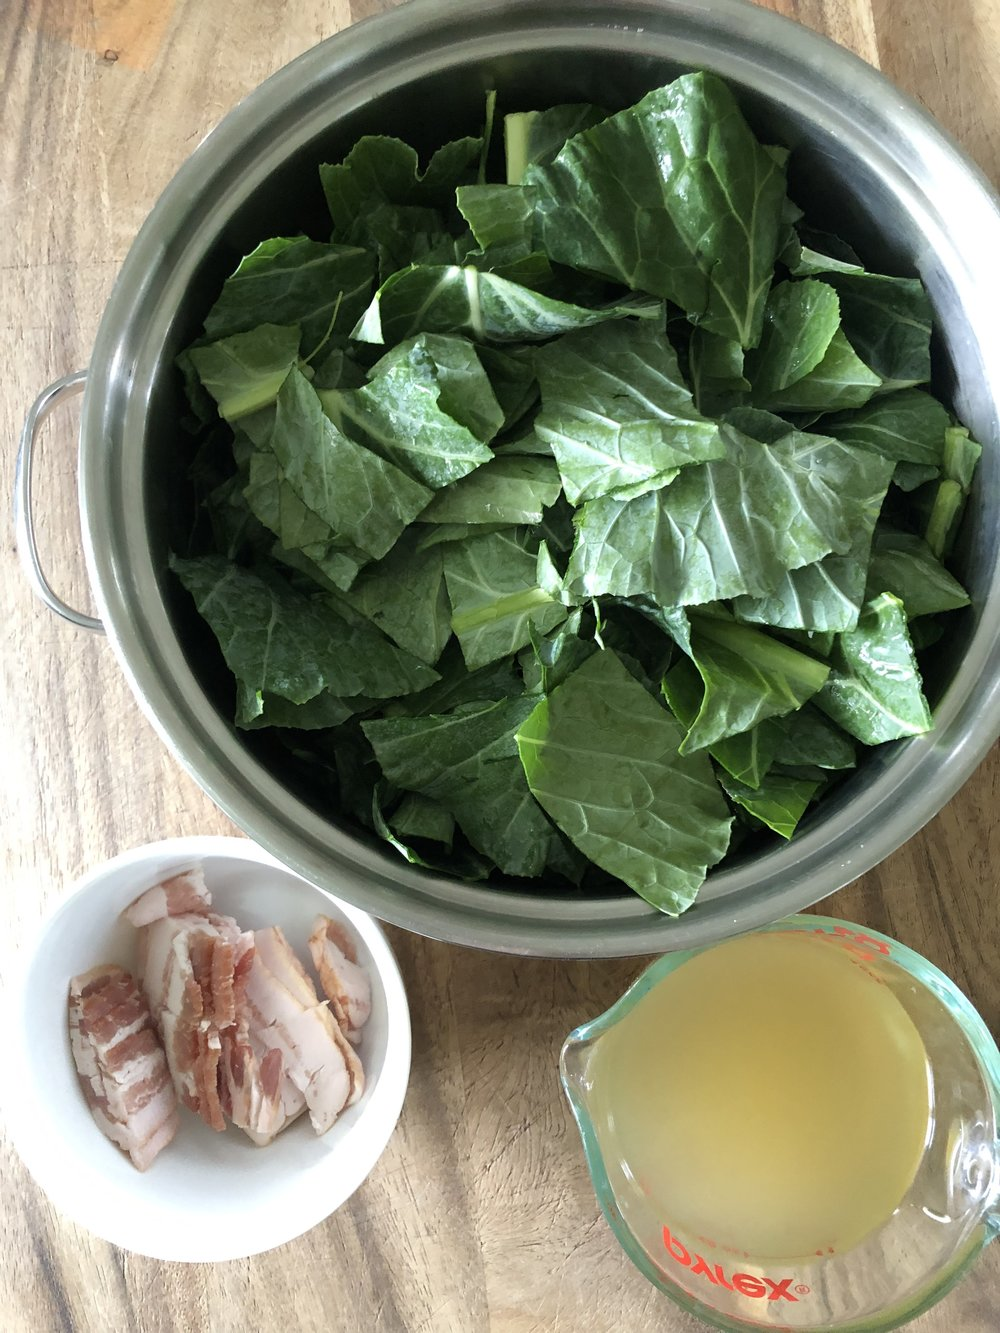 Place Rinsed collard greens in large pot and add in 3 Slices of chopped Bacon and 32 ounces Organic Chicken Broth or better yet...use homemade.